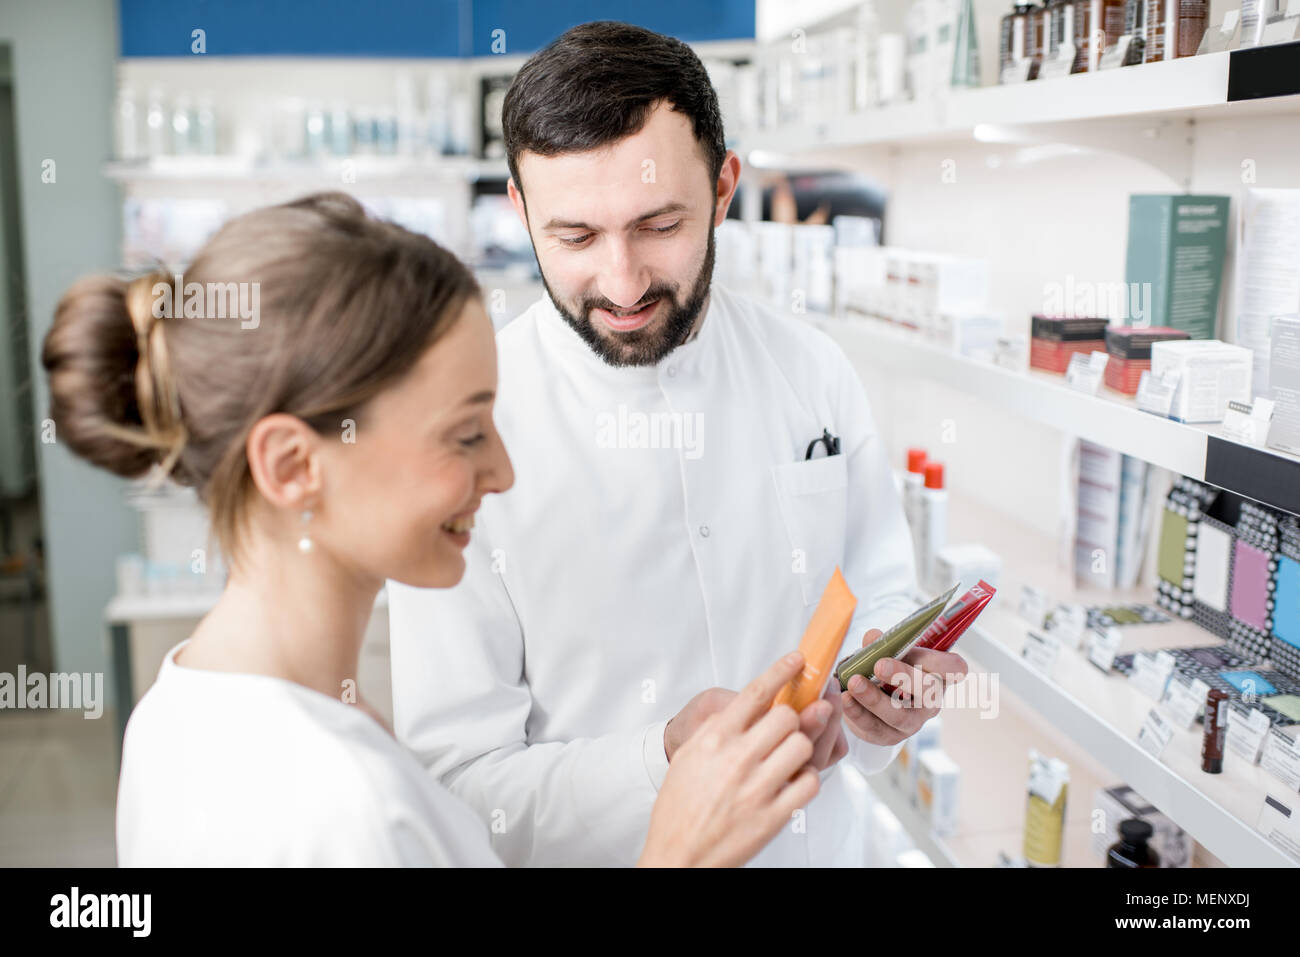 Pharmacist with client in the pharmacy store Stock Photo